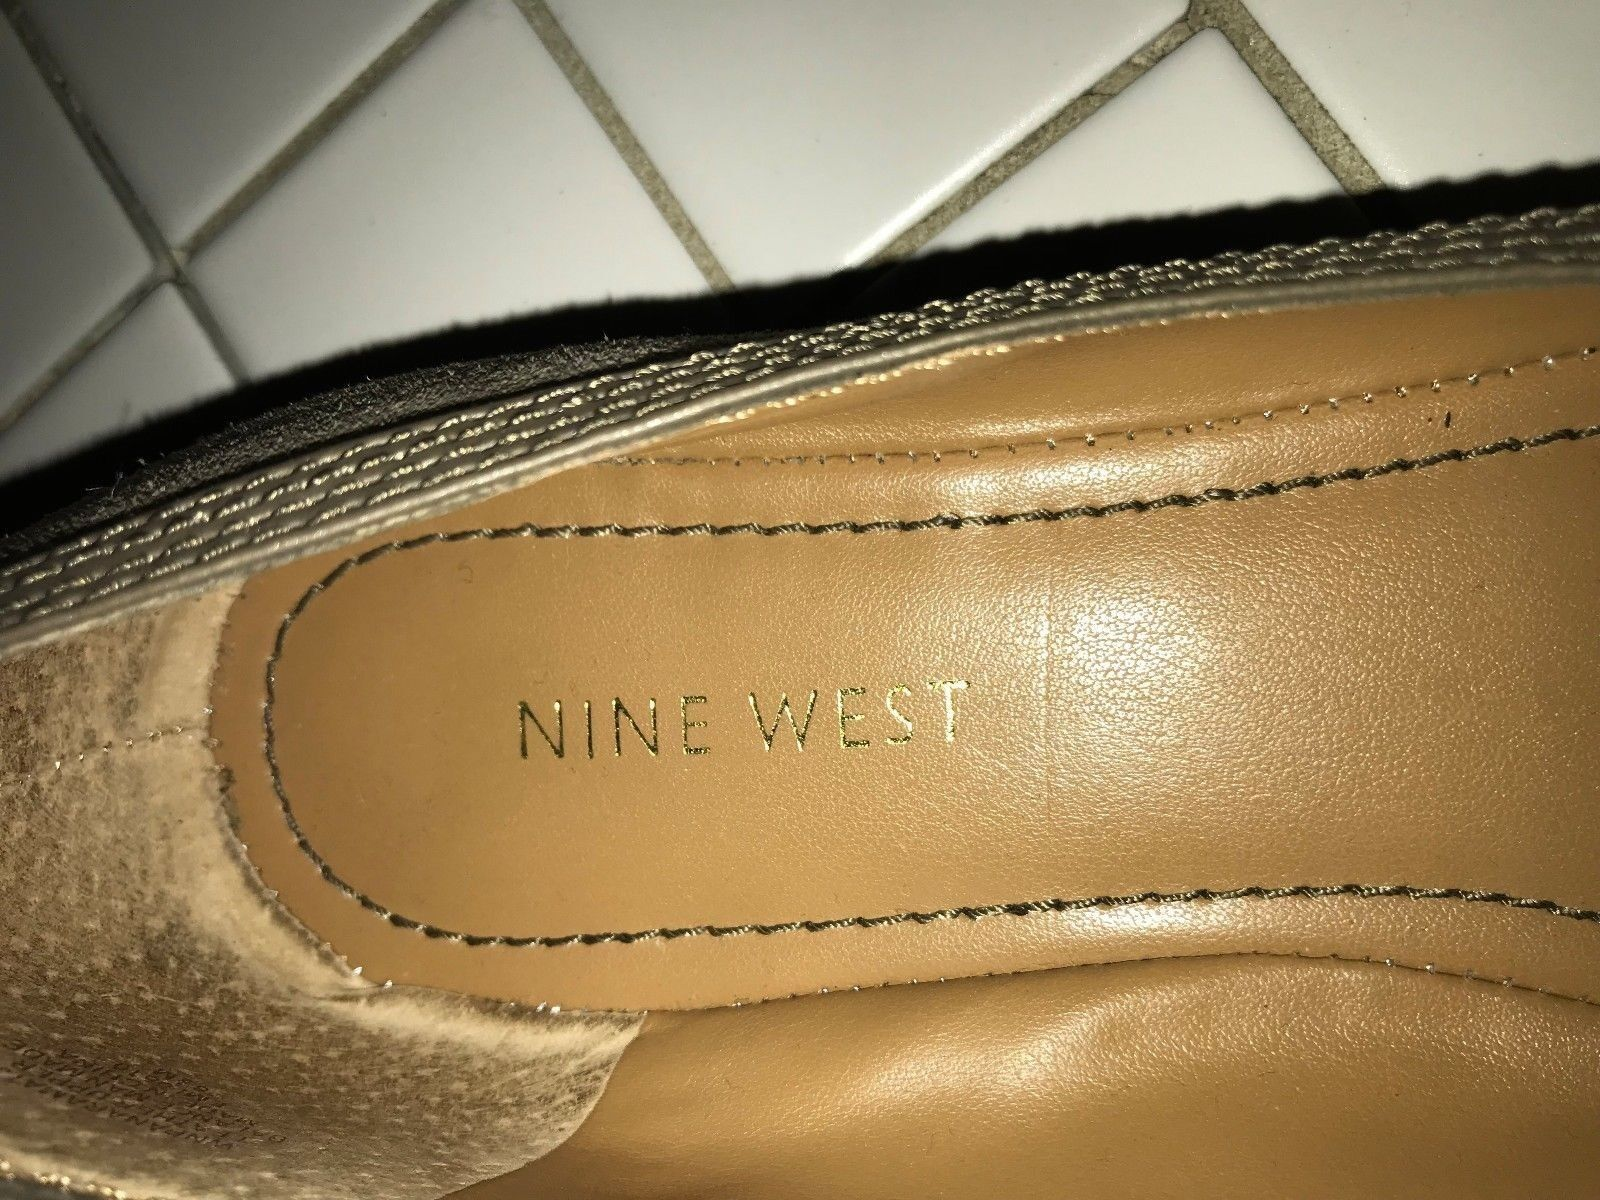 NEW - Nine West - Taupe Flat (Tawny Braun) Suede, Ballet Flat Taupe Wi Buckle – 8½ M 8931e9